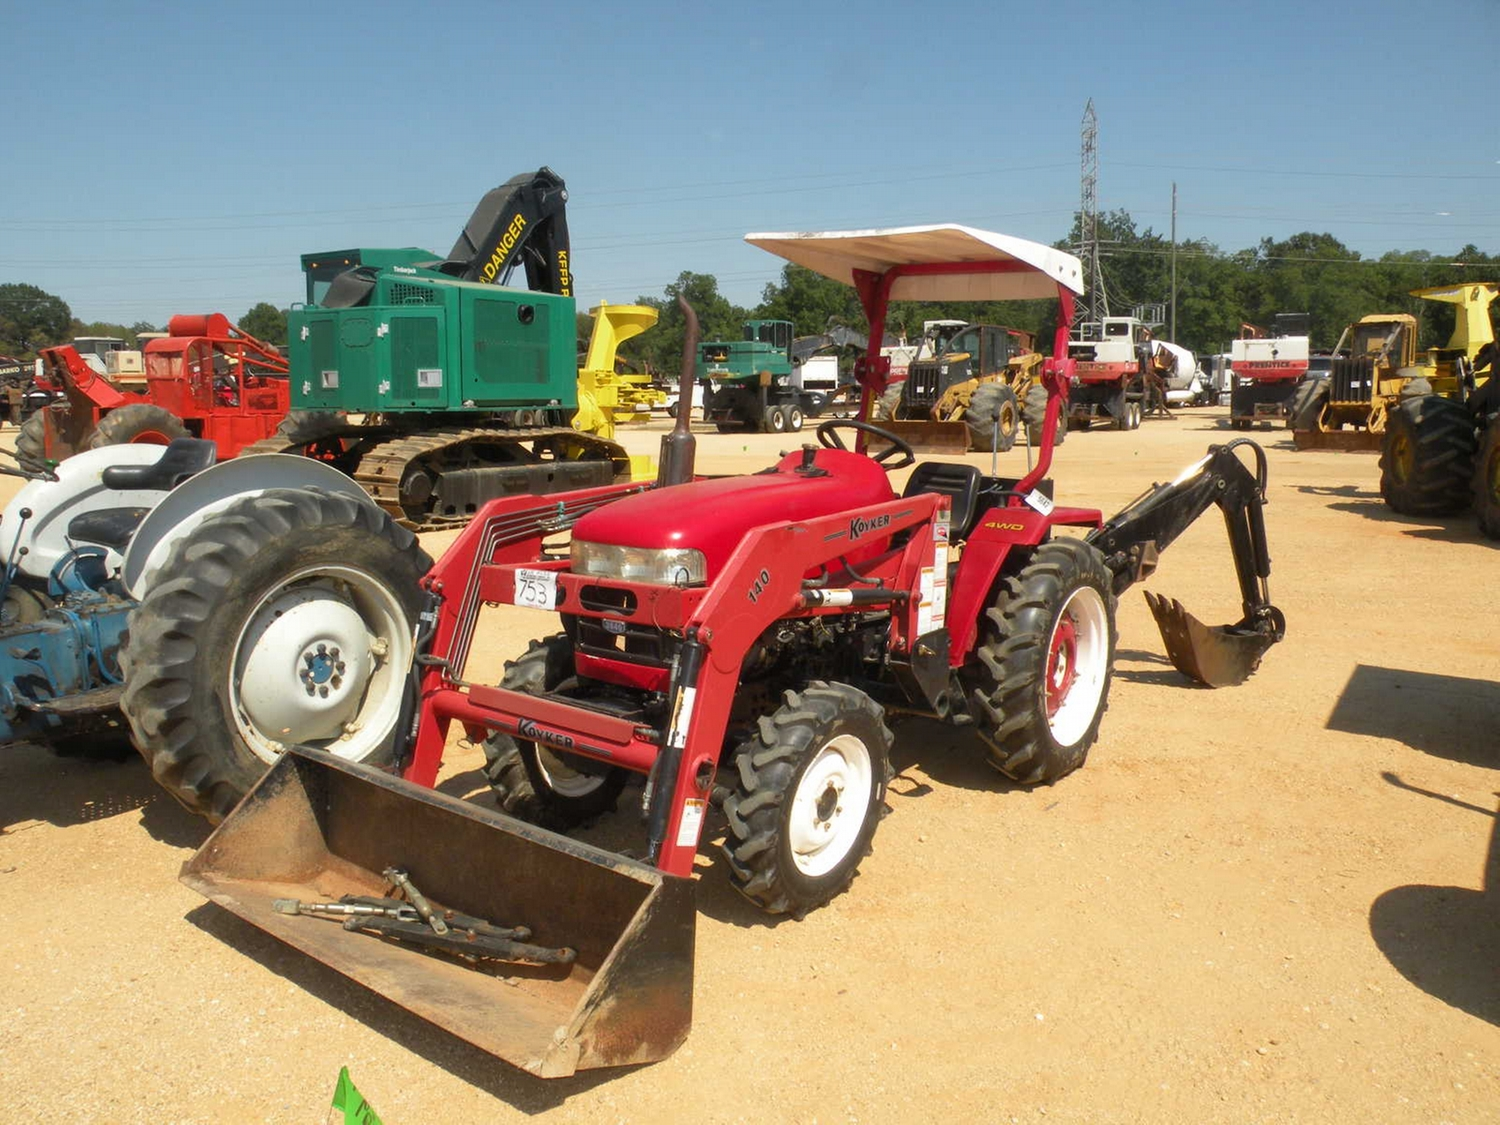 AG-KING TRACTOR 2840 4X4 FARM TRACTOR